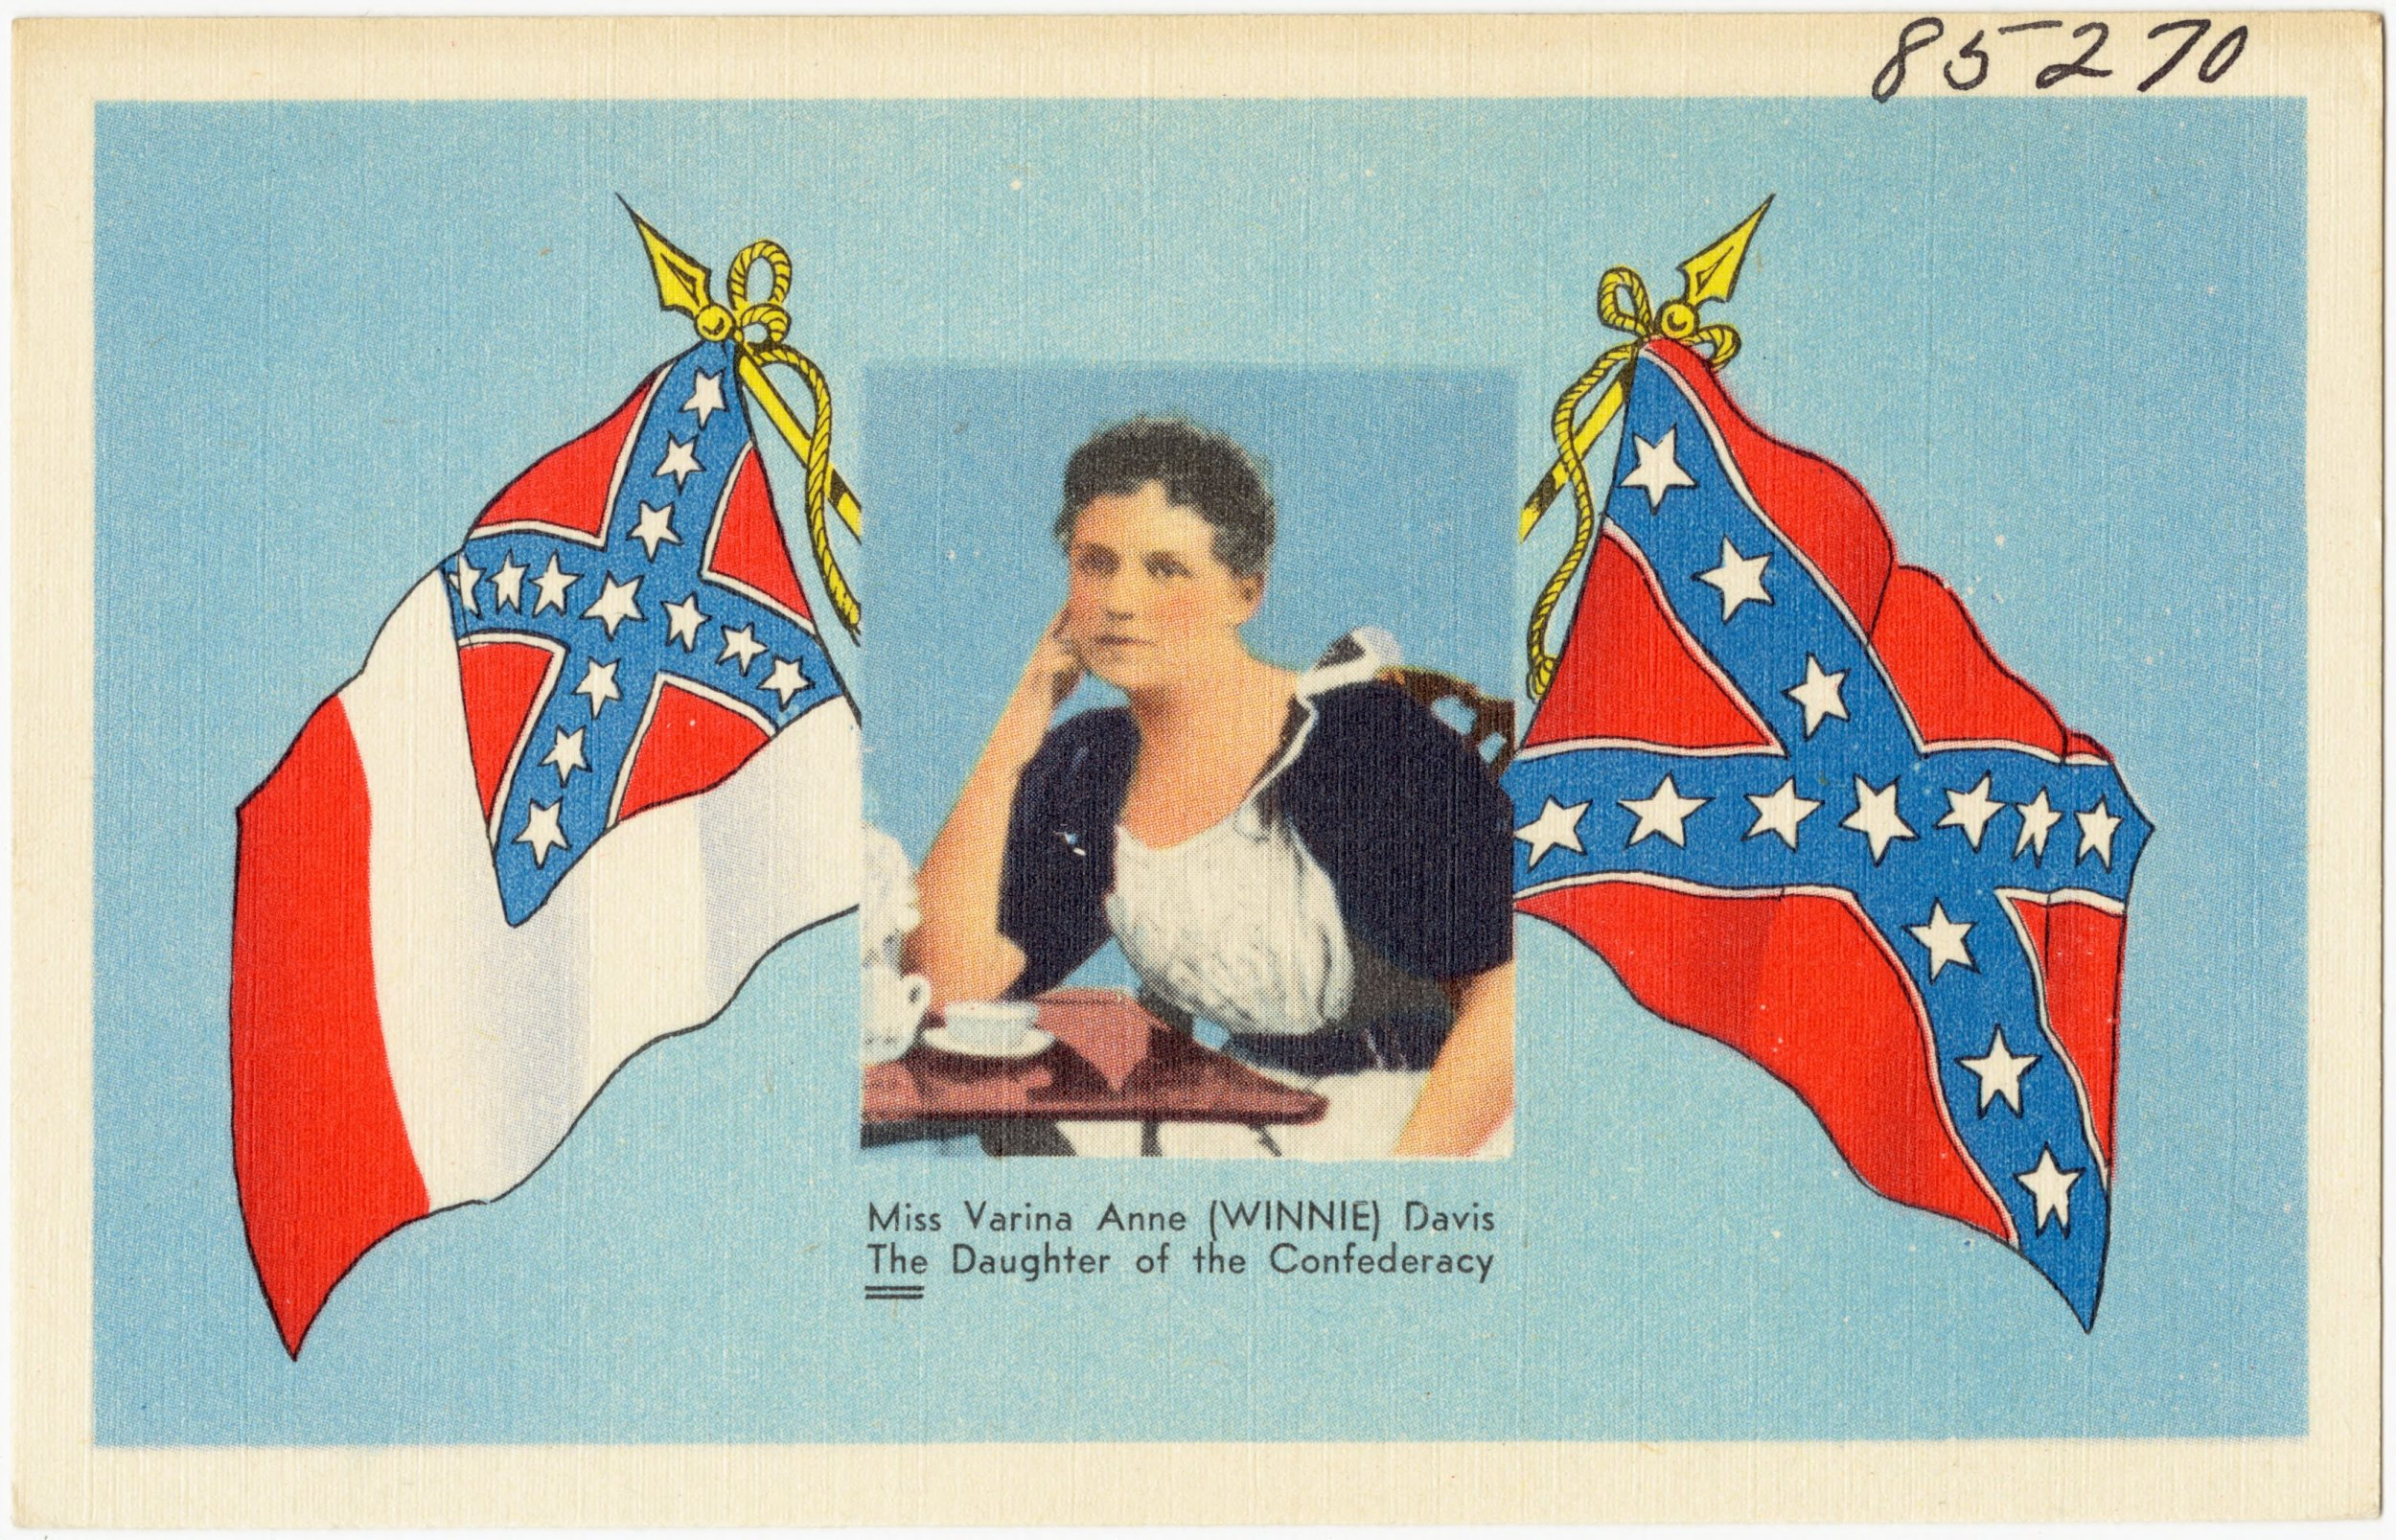 Miss_Varina_Anne_9Winnie)_Davis,_the_daughter_of_the_Confederacy_(85270)